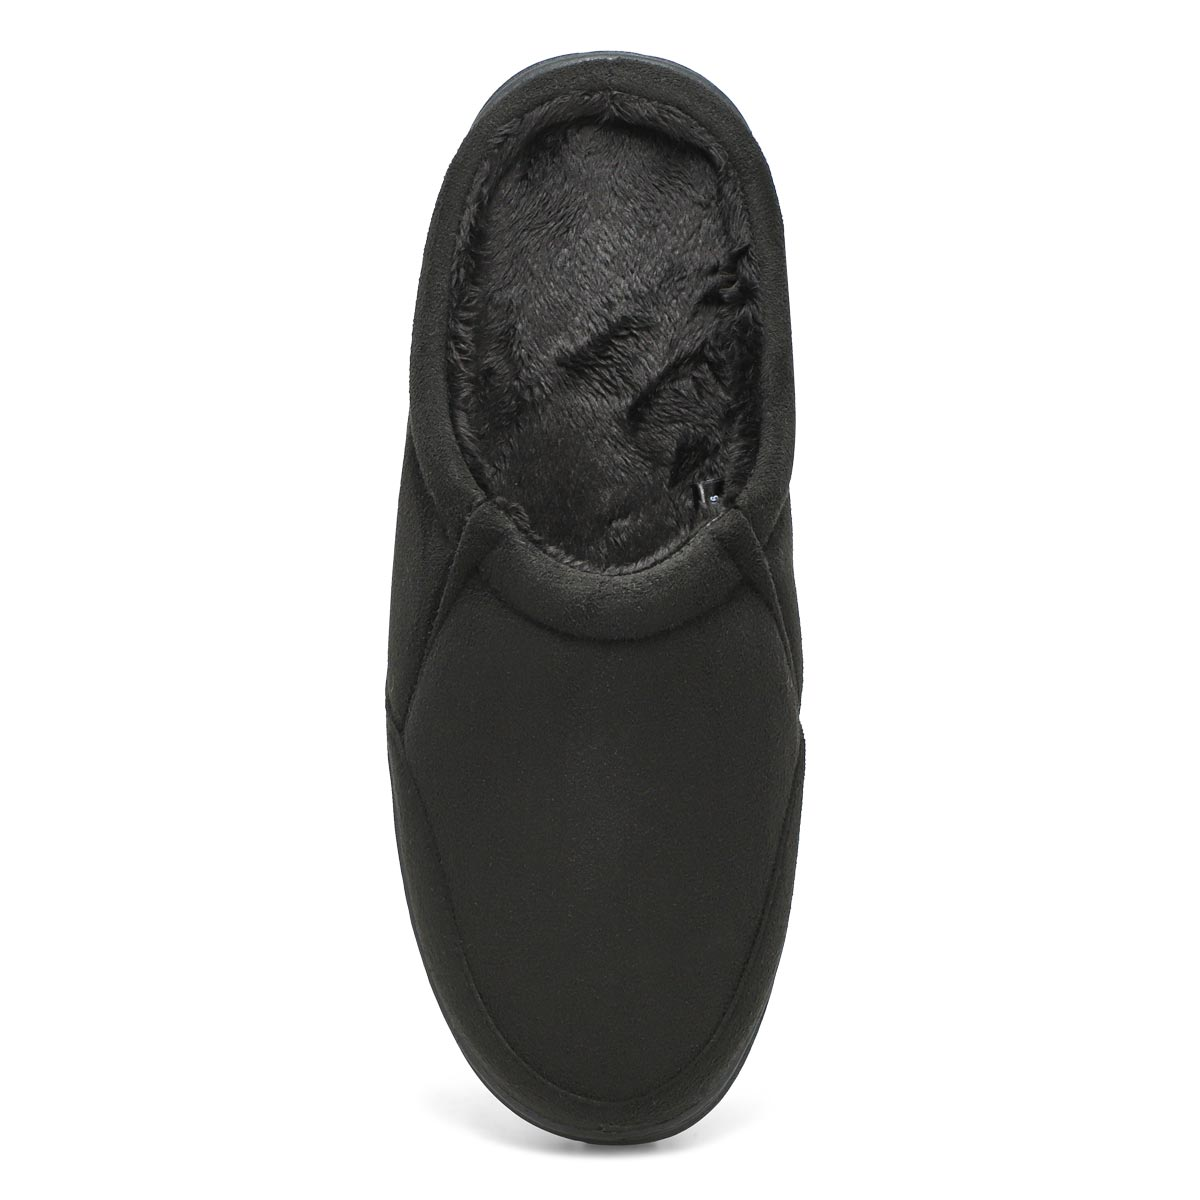 Mns Polar II black open back slipper